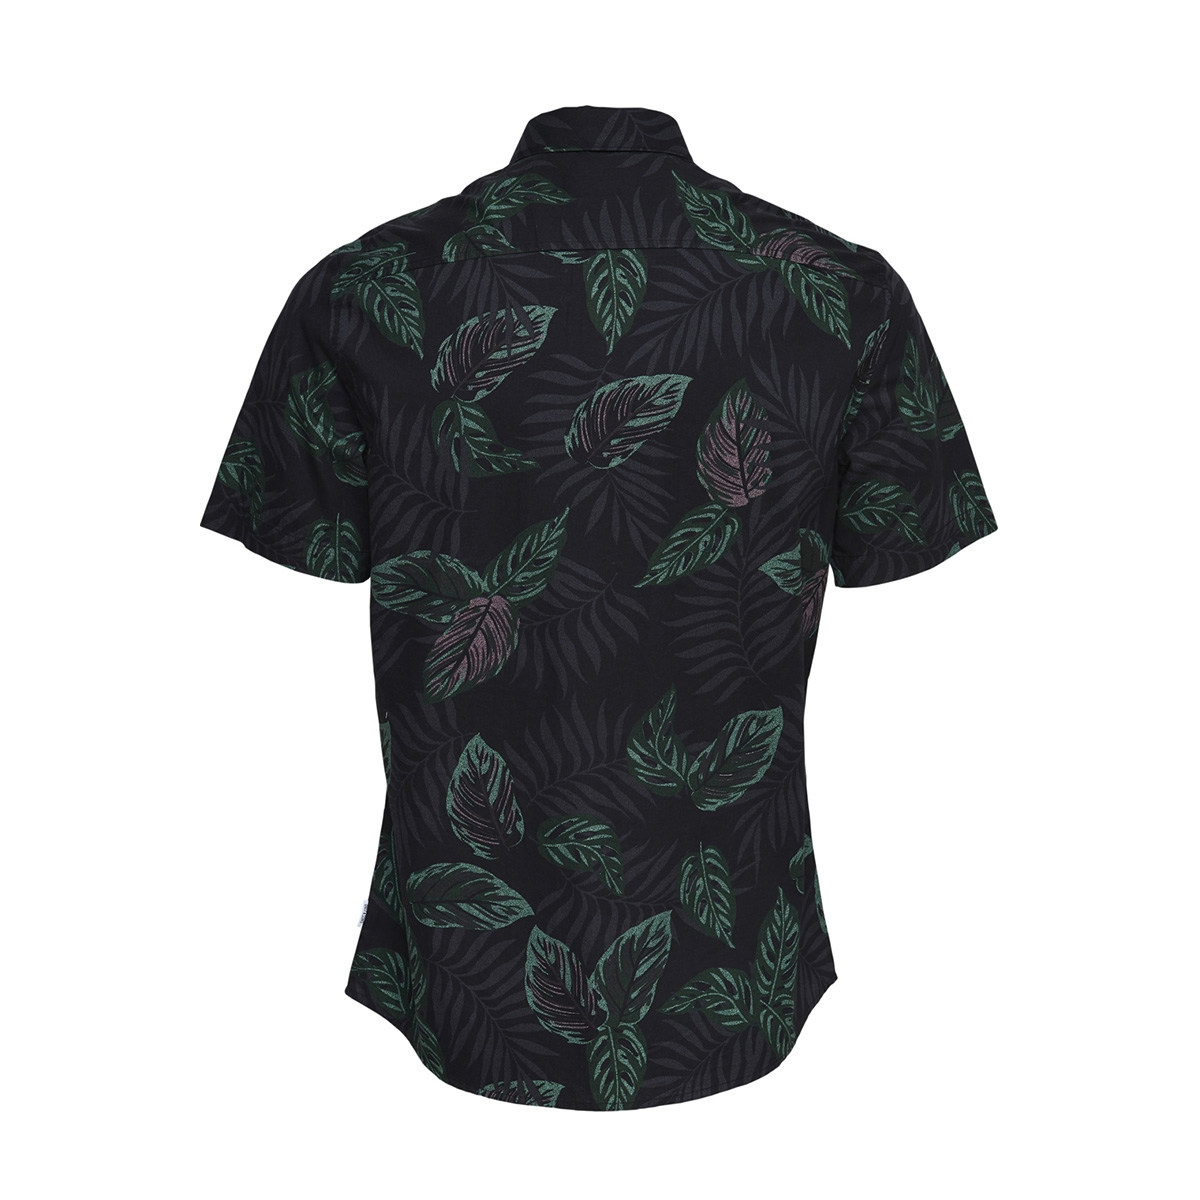 onstimothy ss floral shirt re 22012326 only & sons overhemd black